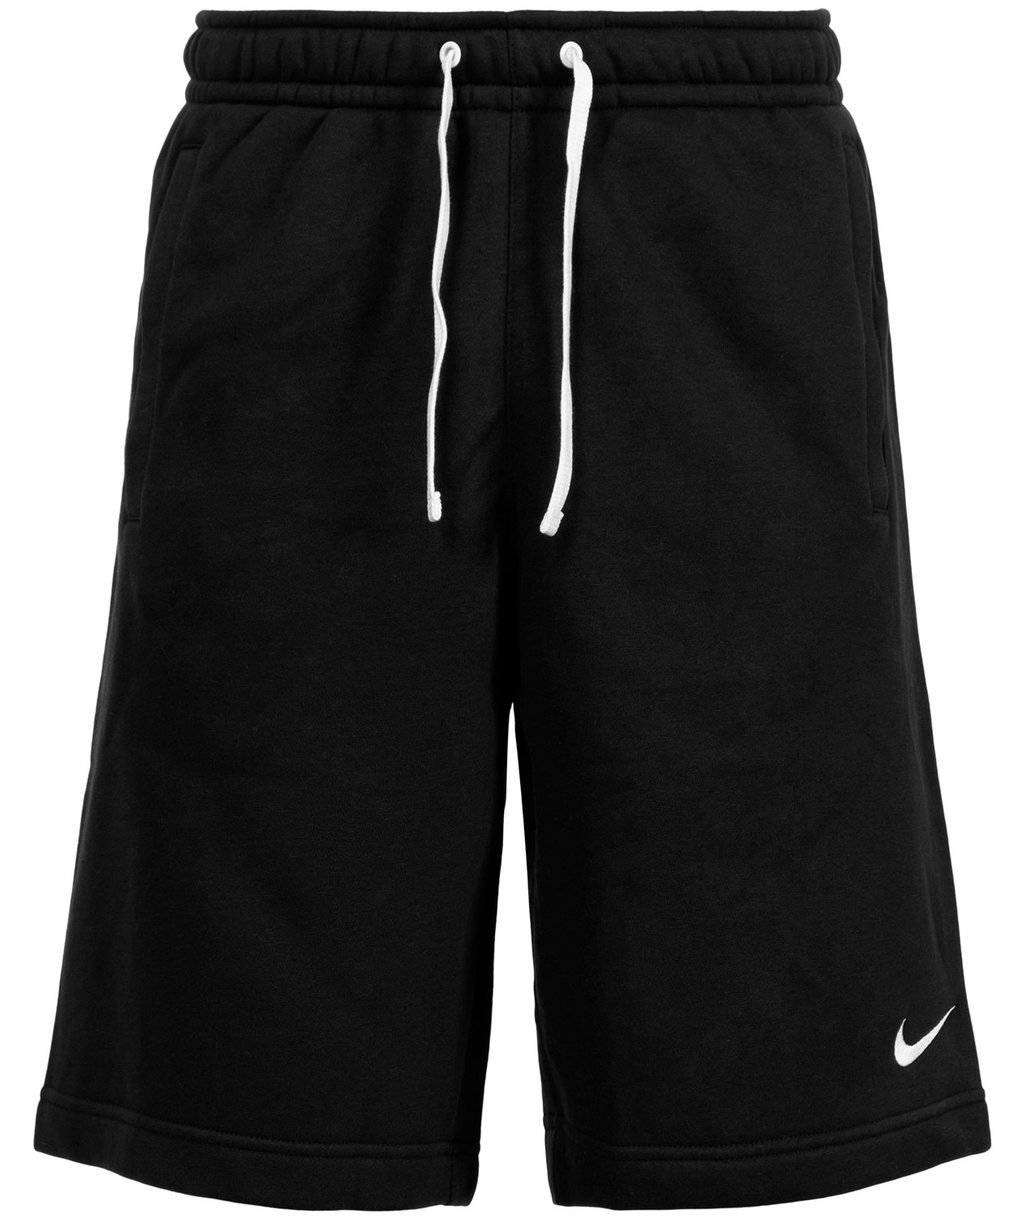 Nike Team shorts, Black